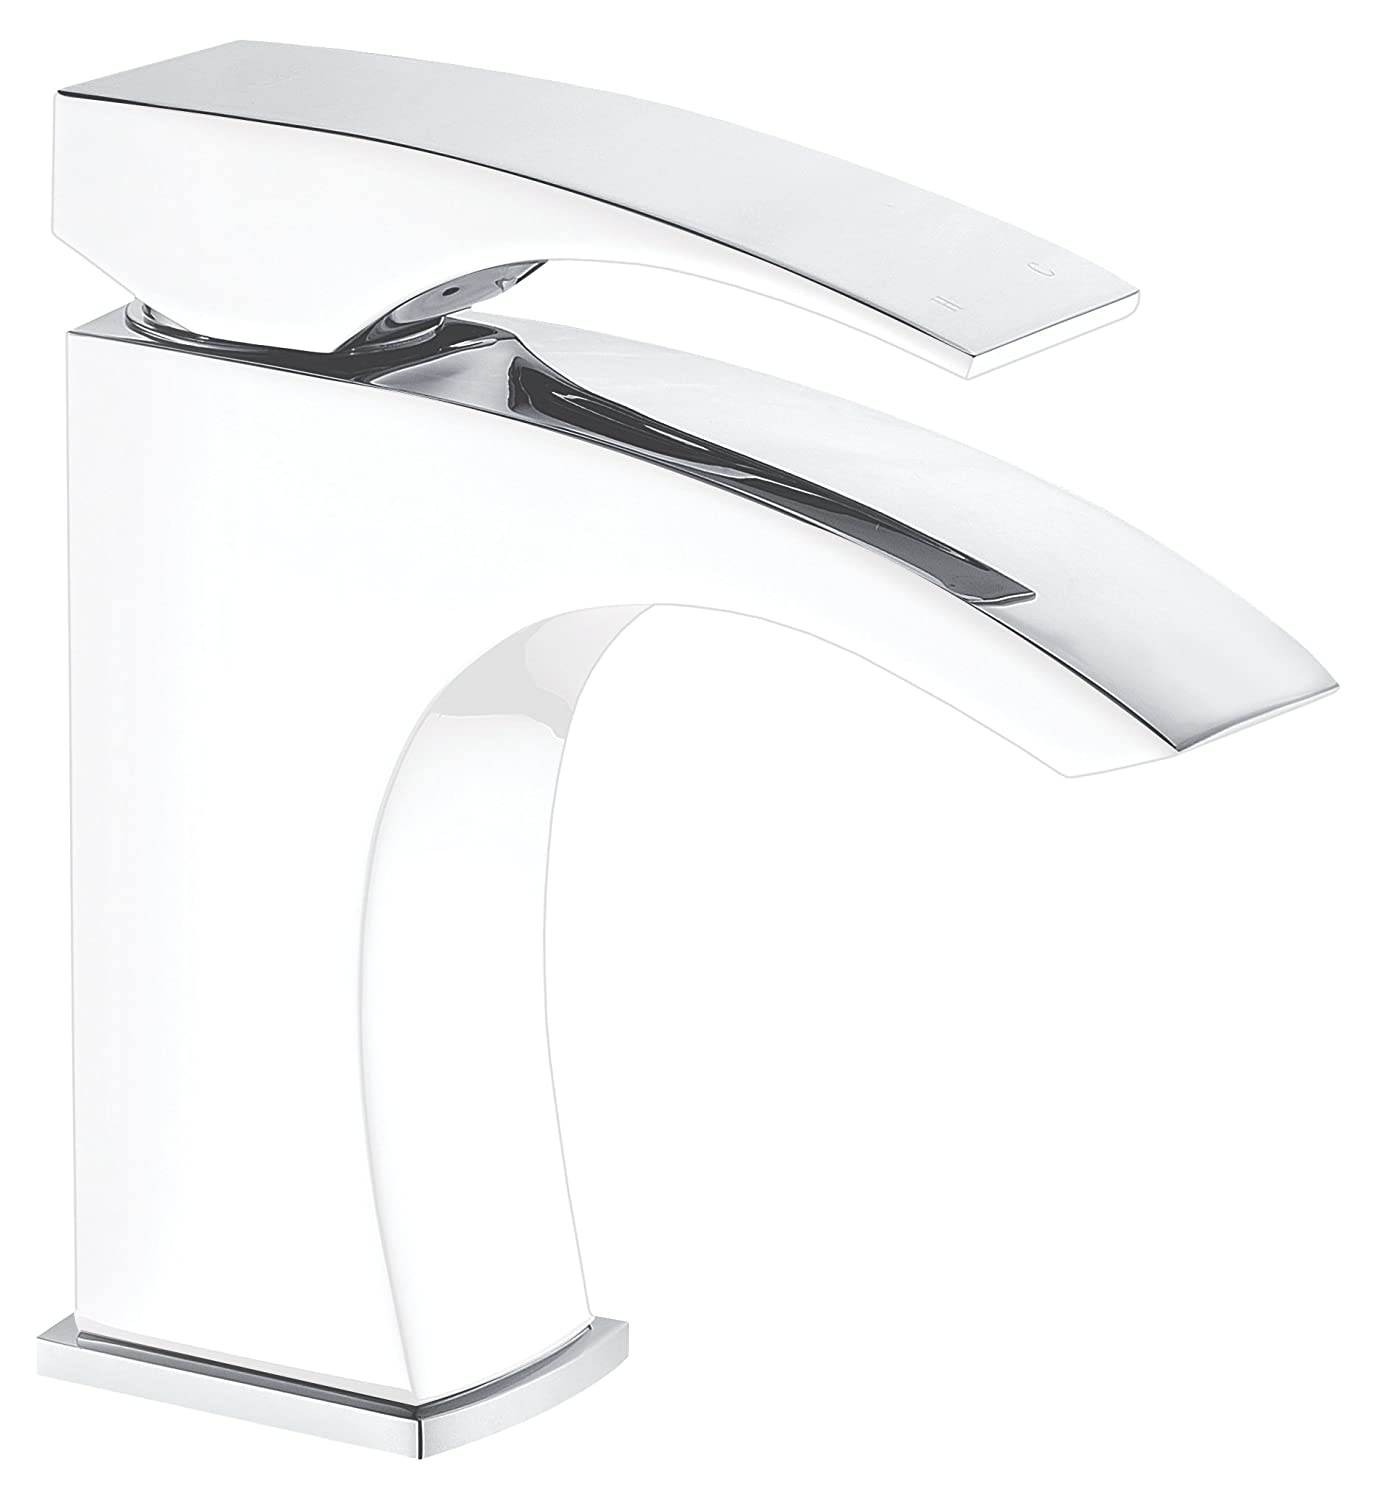 Dawn Ab77 1586 Cpw Single Lever Lavatory Faucet, Chrome And White (Standard Pull Up Drain With Lift Rod D90 0010 C Included) by Dawn